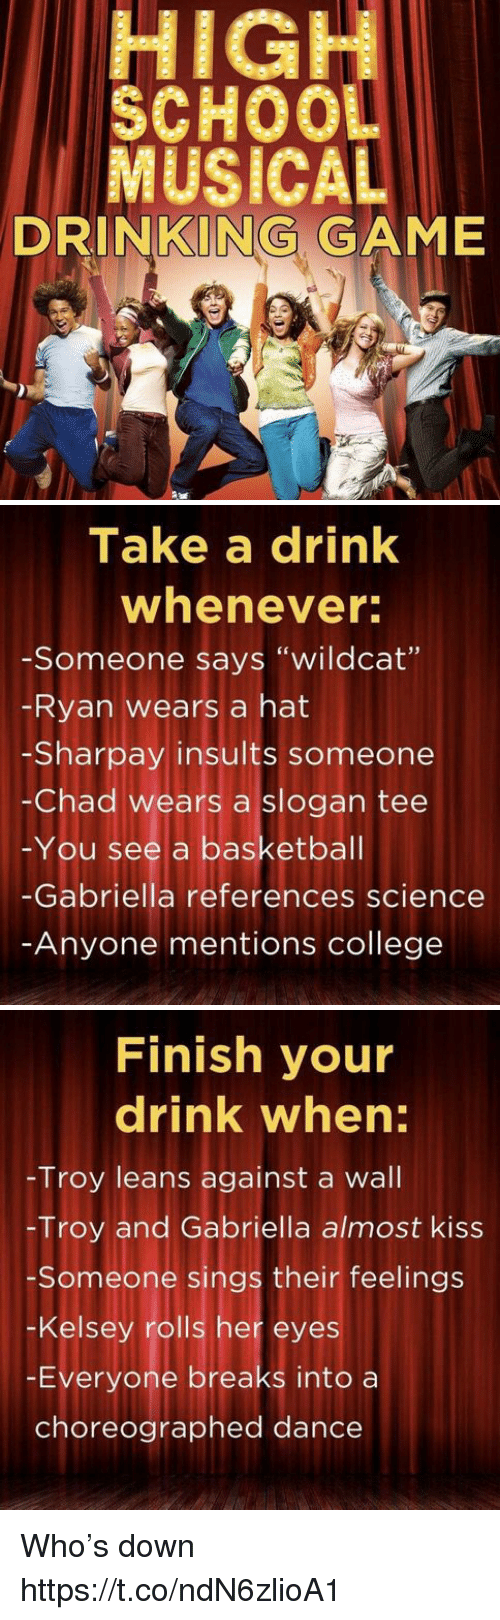 "sharpay: HIGH  SCHOOL  MUSICAL  DRINKING GAME   Take a drink  whenever  -Someone says ""wildcat'""  Ryan wears a hat  -Sharpay insults someone  -Chad wears a slogan tee  You see a basketball  Gabriella references science  Anyone mentions college   Finish your  drink when:  Troy leans against a wall  -Troy and Gabriella almost kiss  Someone sings their feelings  -Kelsey rolls her eyes  Everyone breaks into a  choreographed dance Who's down https://t.co/ndN6zlioA1"